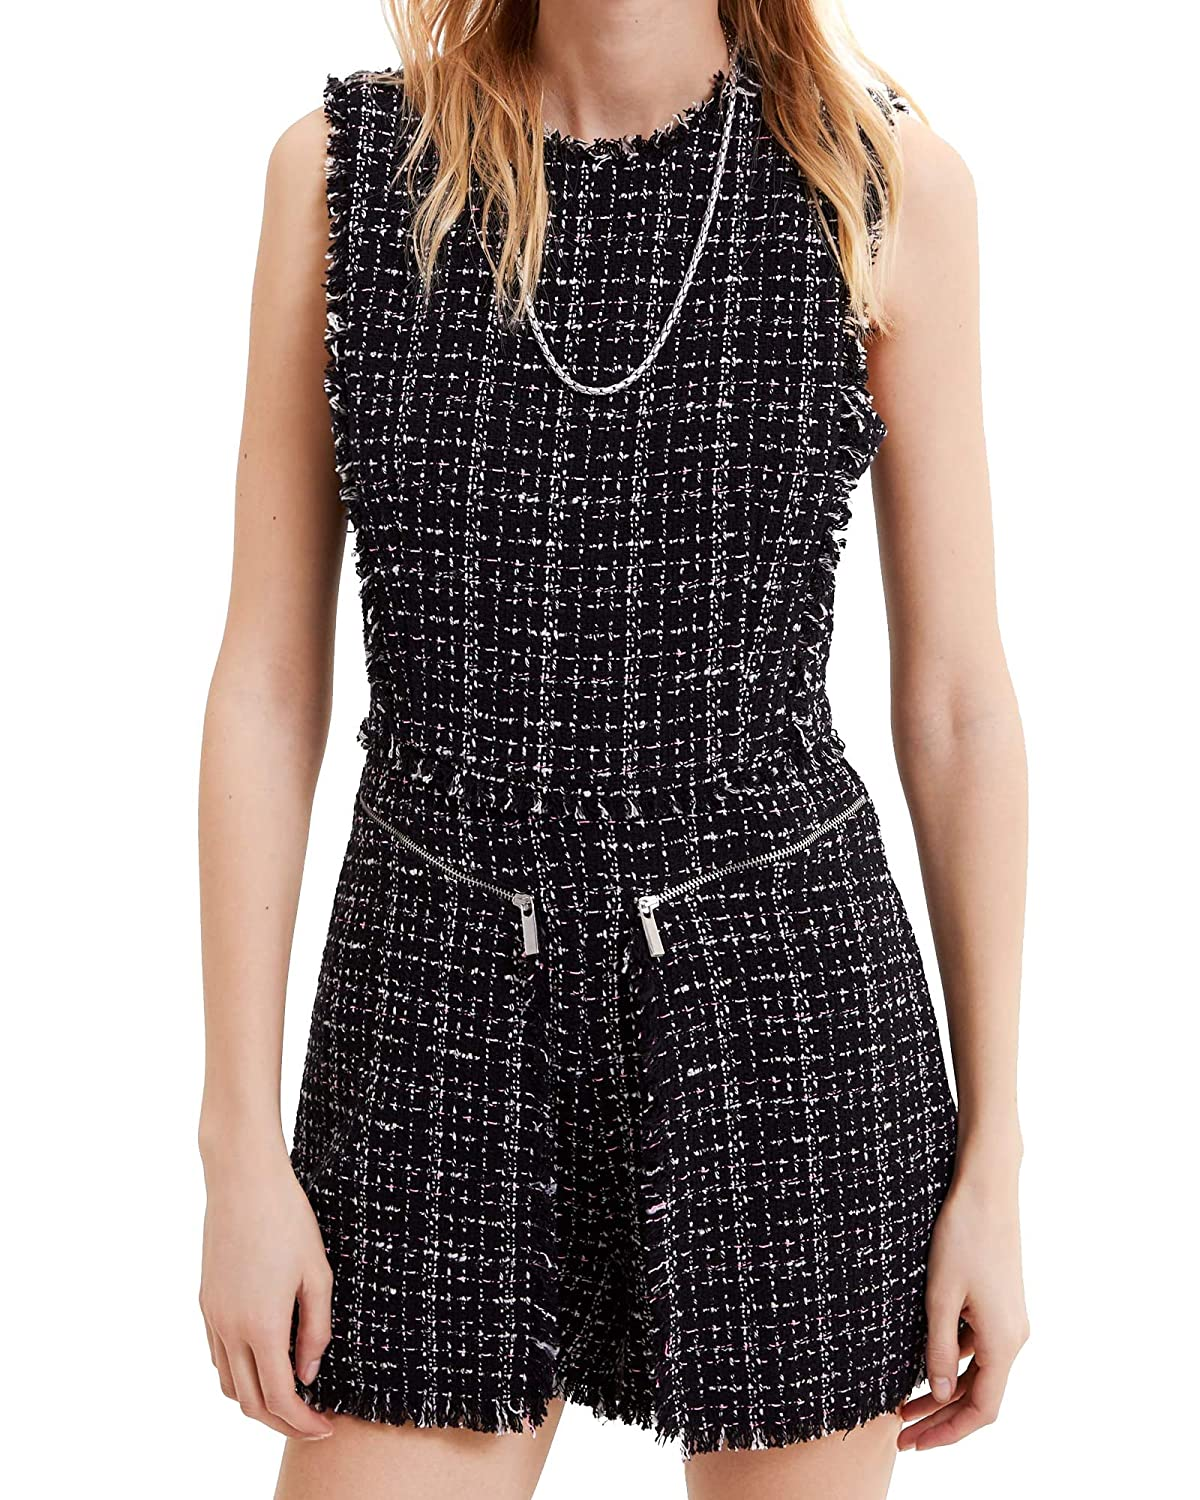 ad5eac751c0f Zara Women s Tweed Pinafore Jumpsuit 2236 644 Black  Amazon.co.uk  Clothing